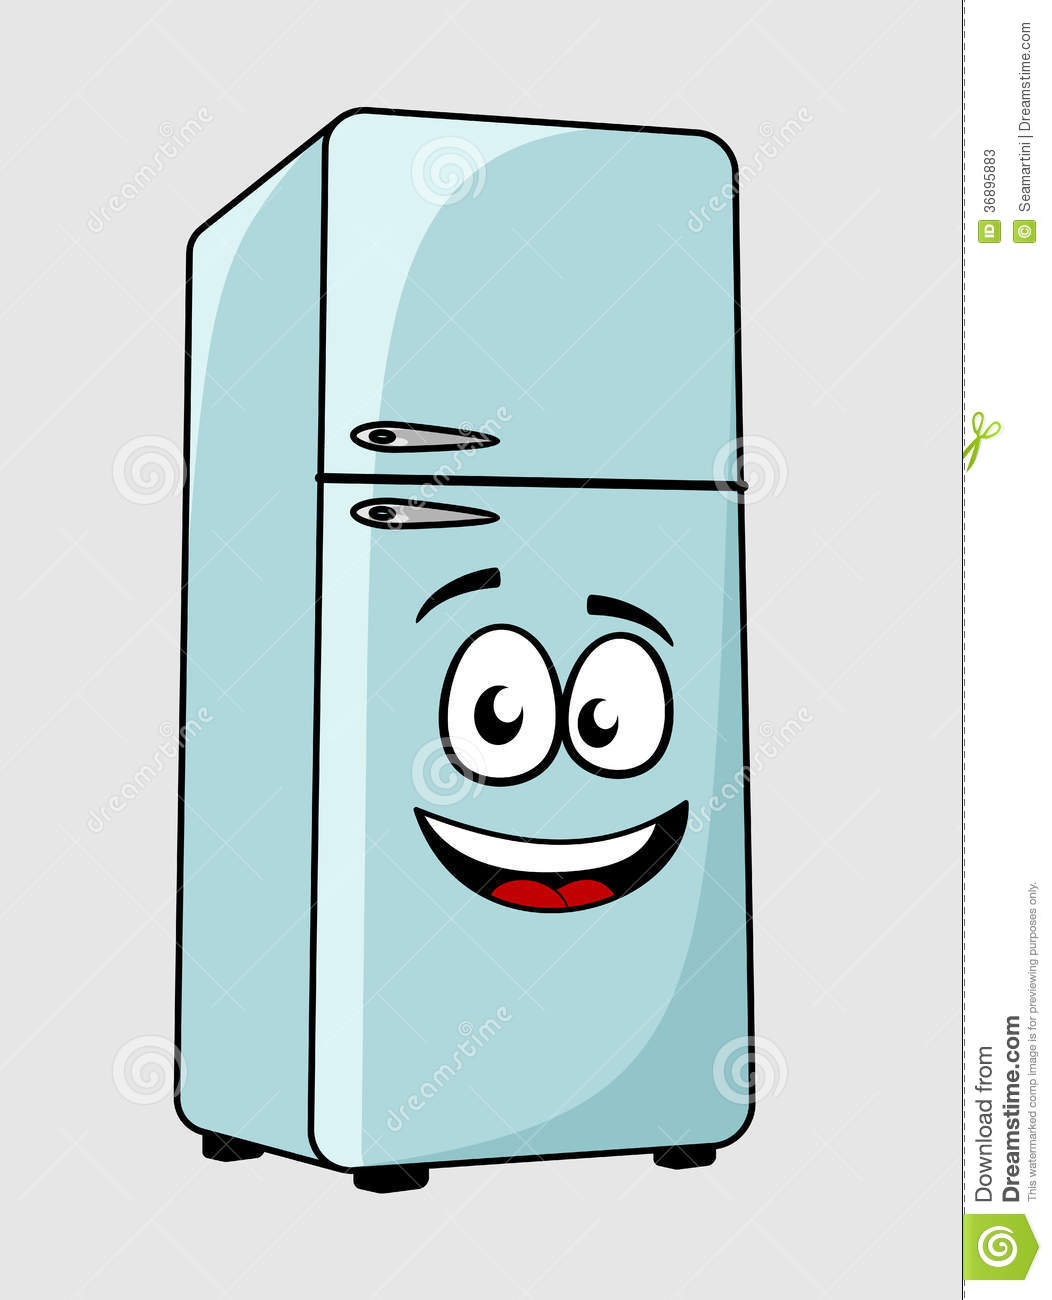 cleaning fridge clipart - photo #45